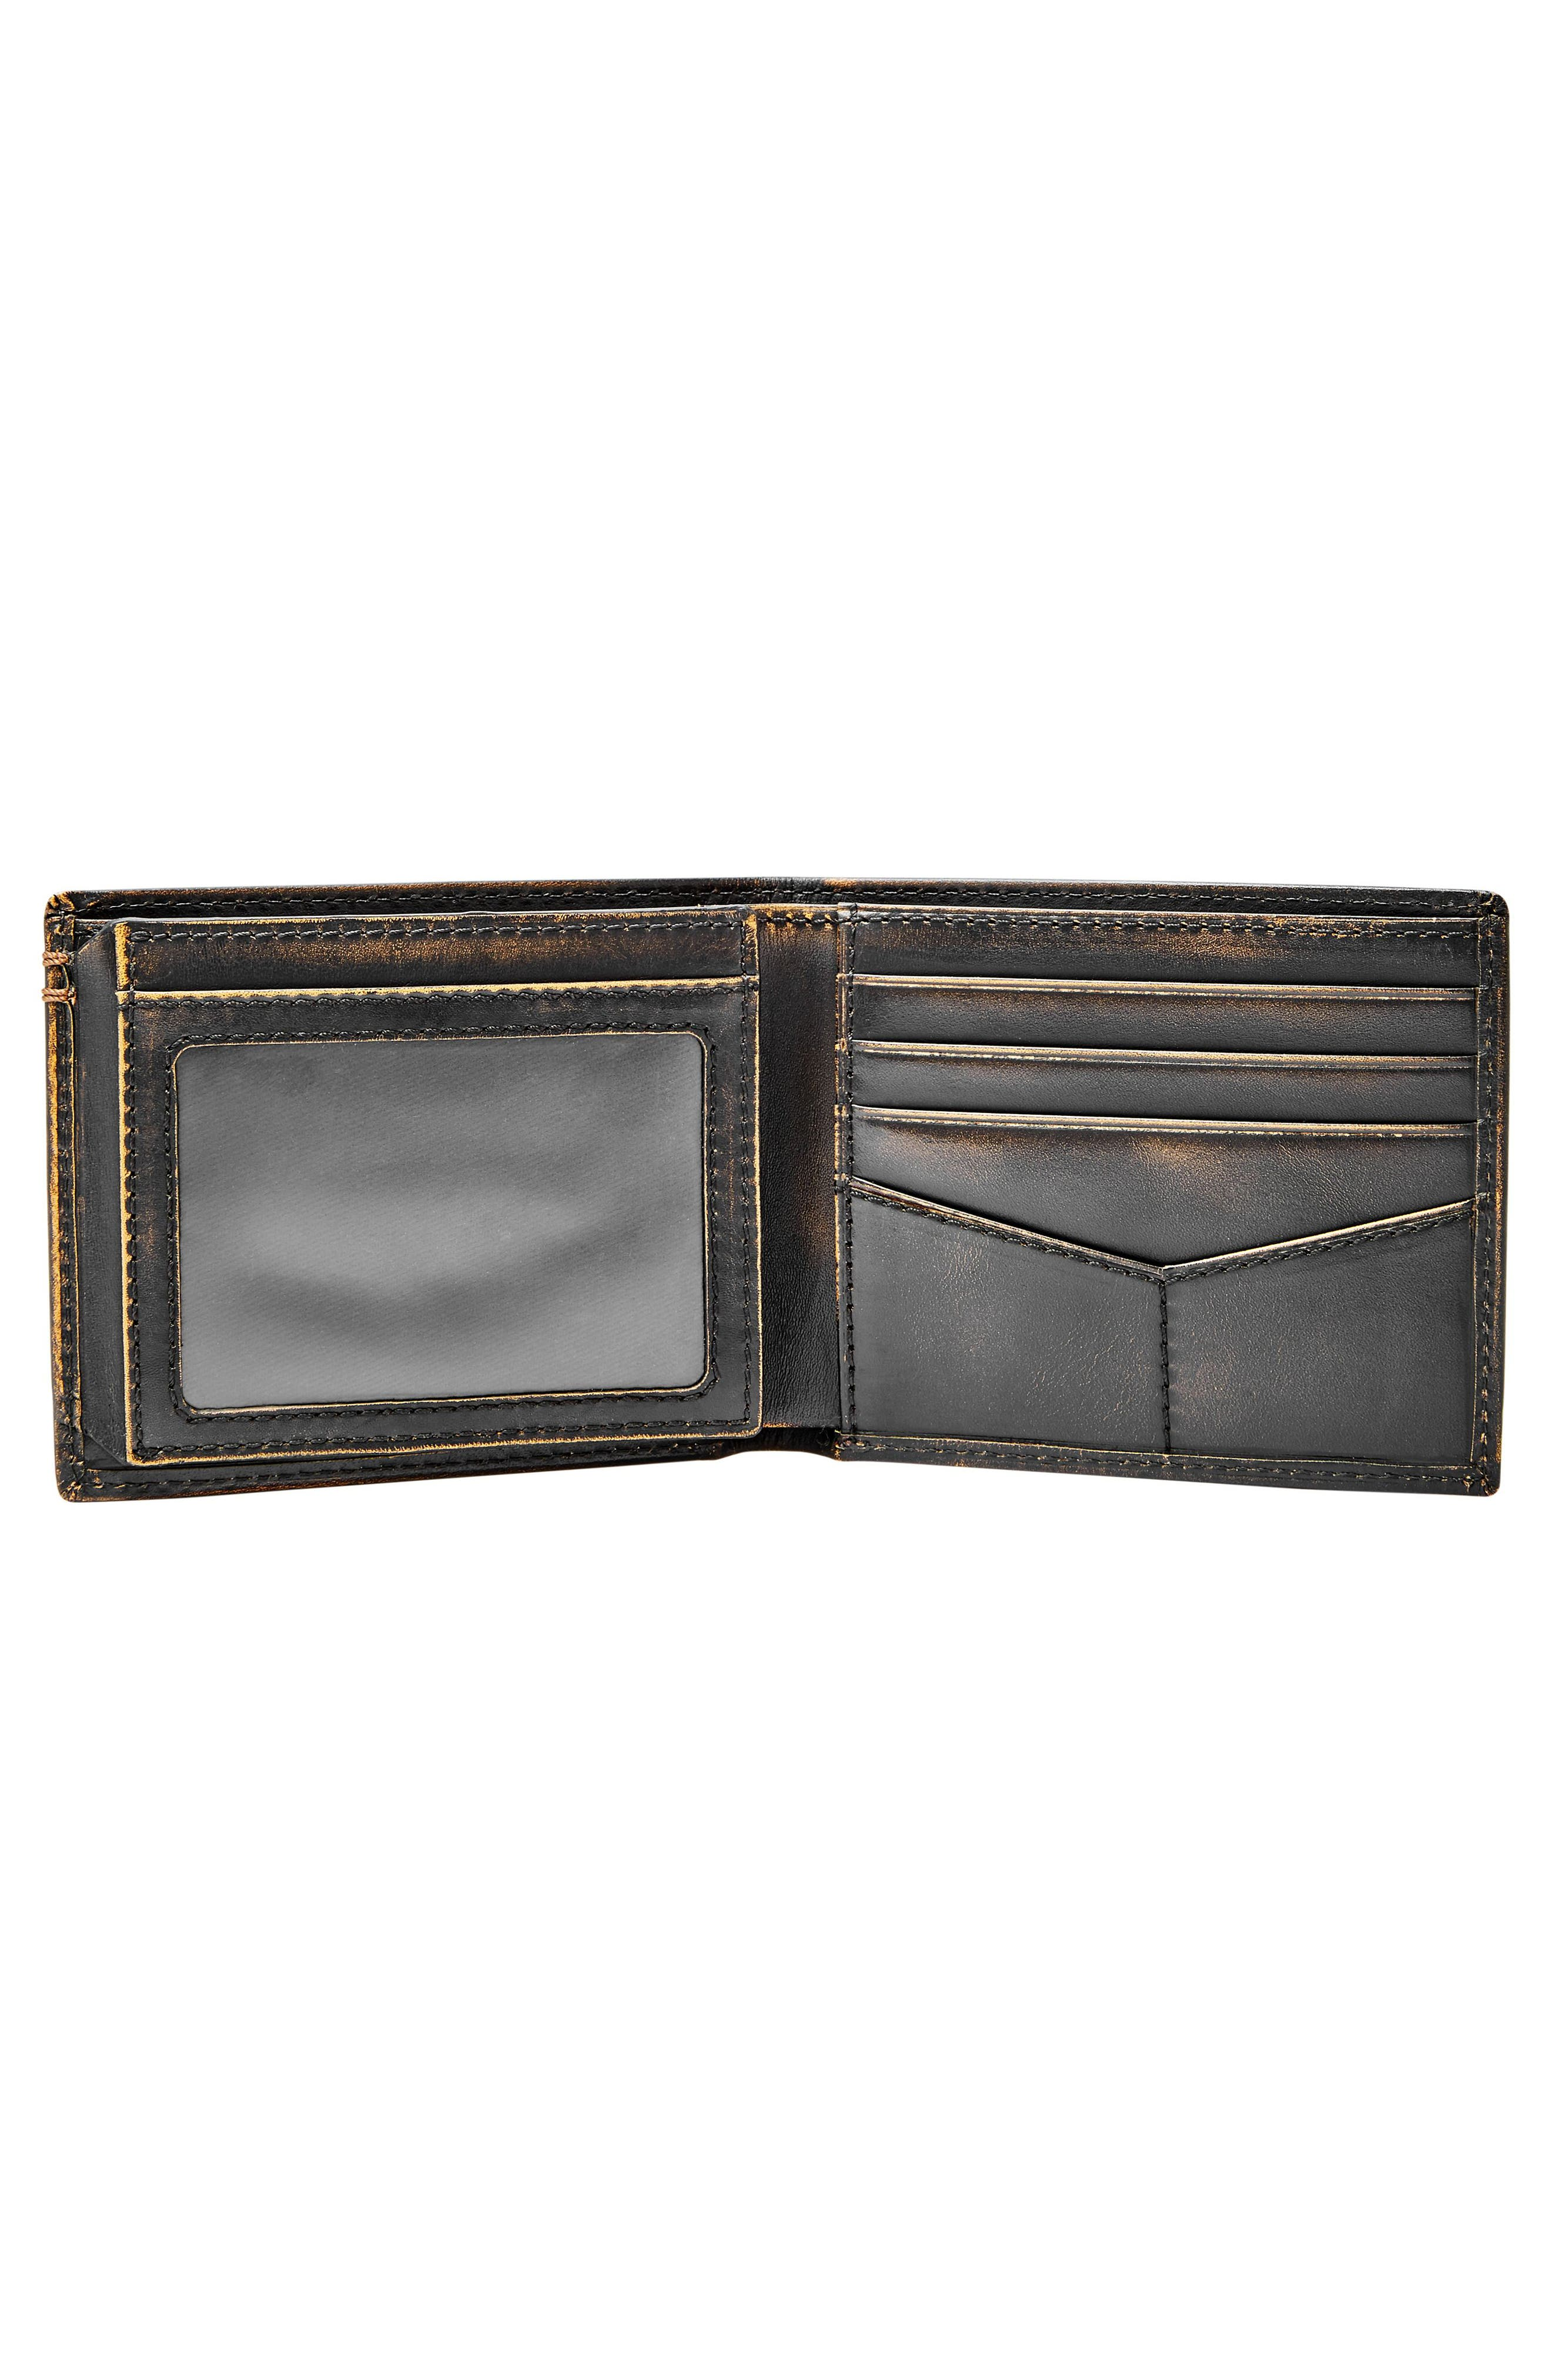 Wade Leather Wallet,                             Alternate thumbnail 2, color,                             BLACK